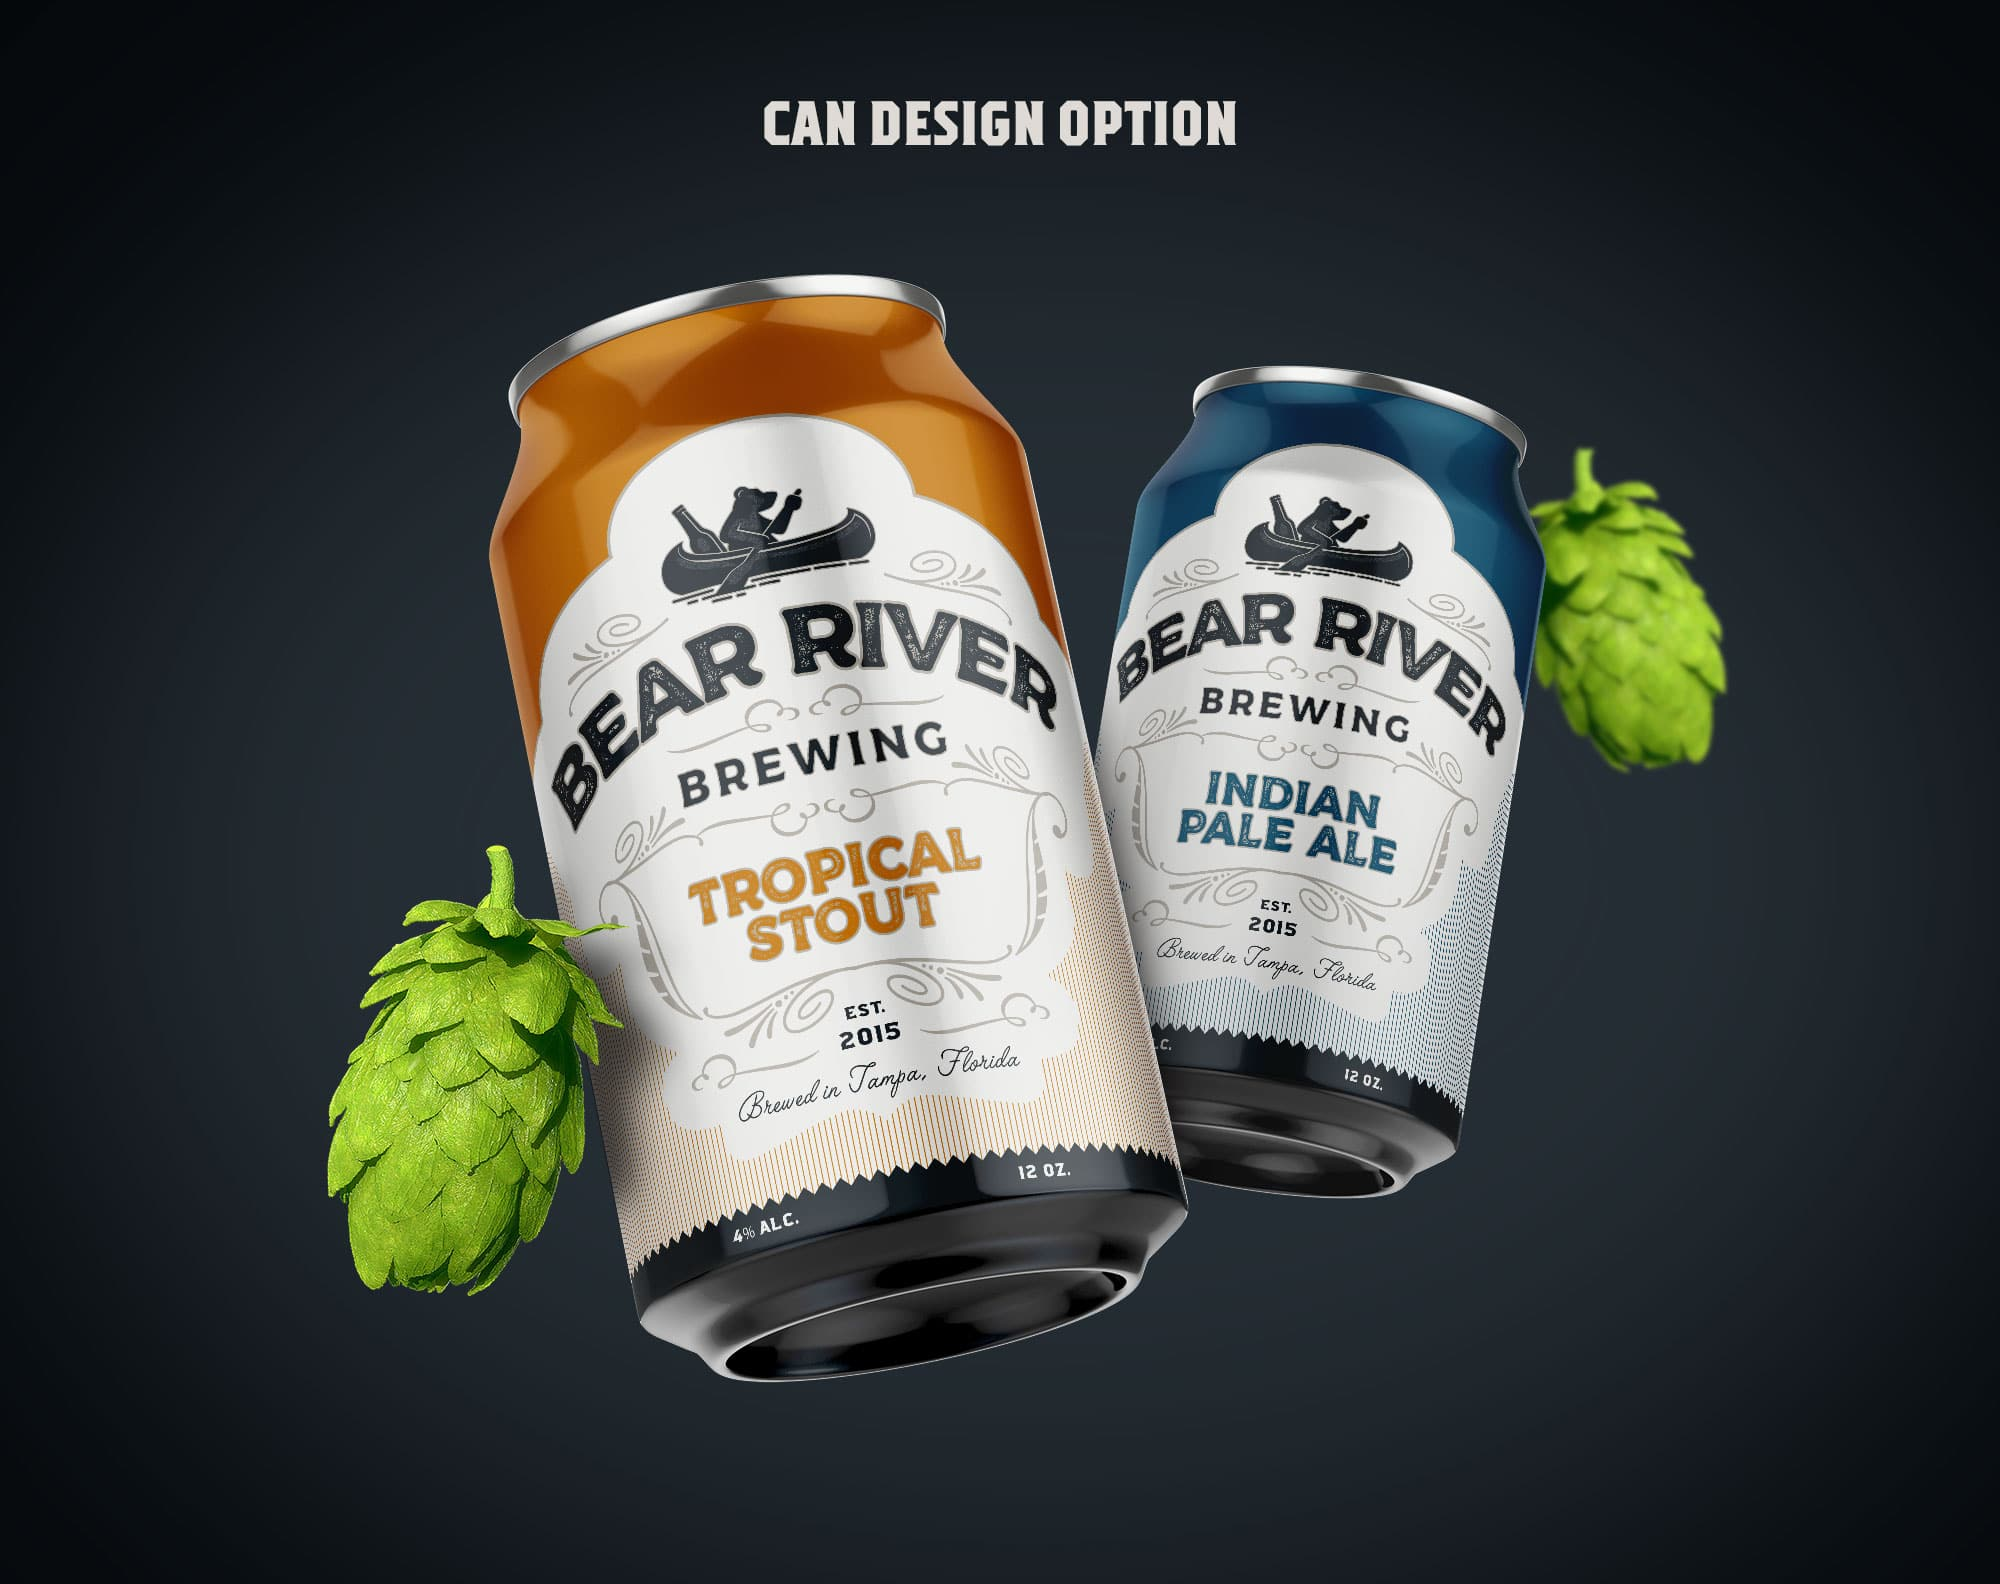 Bear River Brewing Optional Can Design